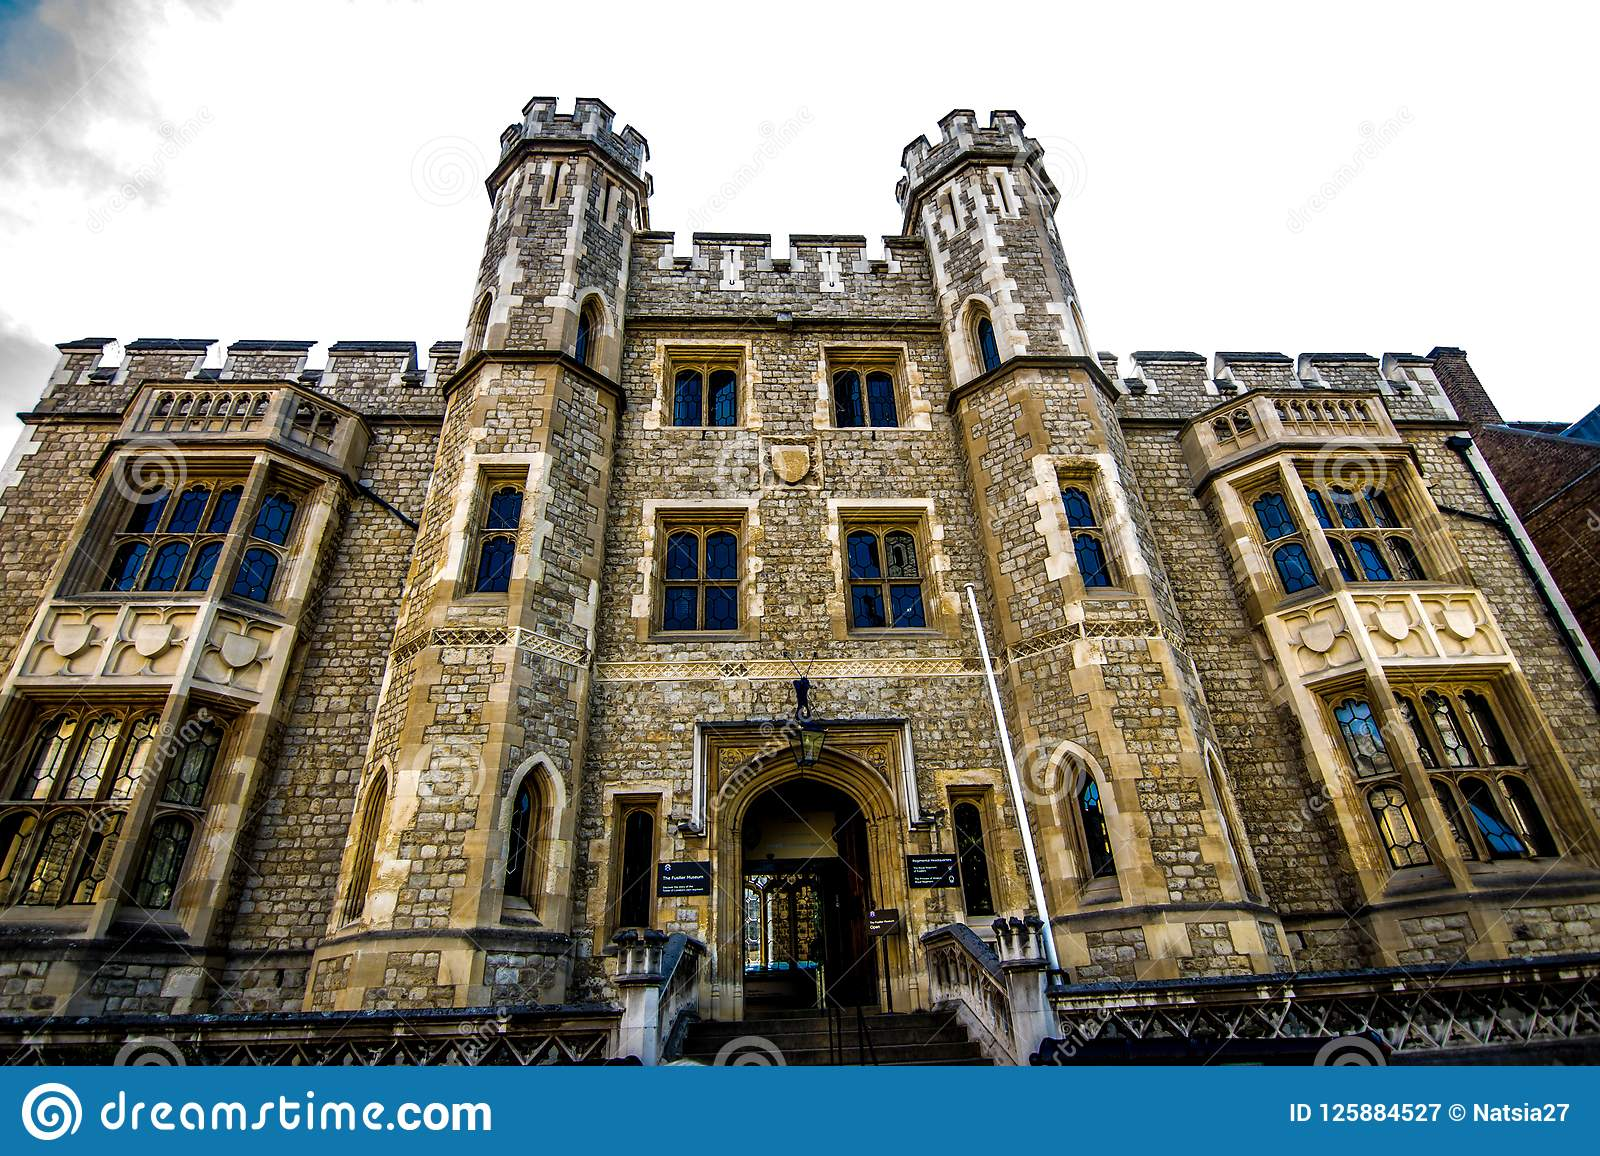 tower of london view from the inside editorial photography image